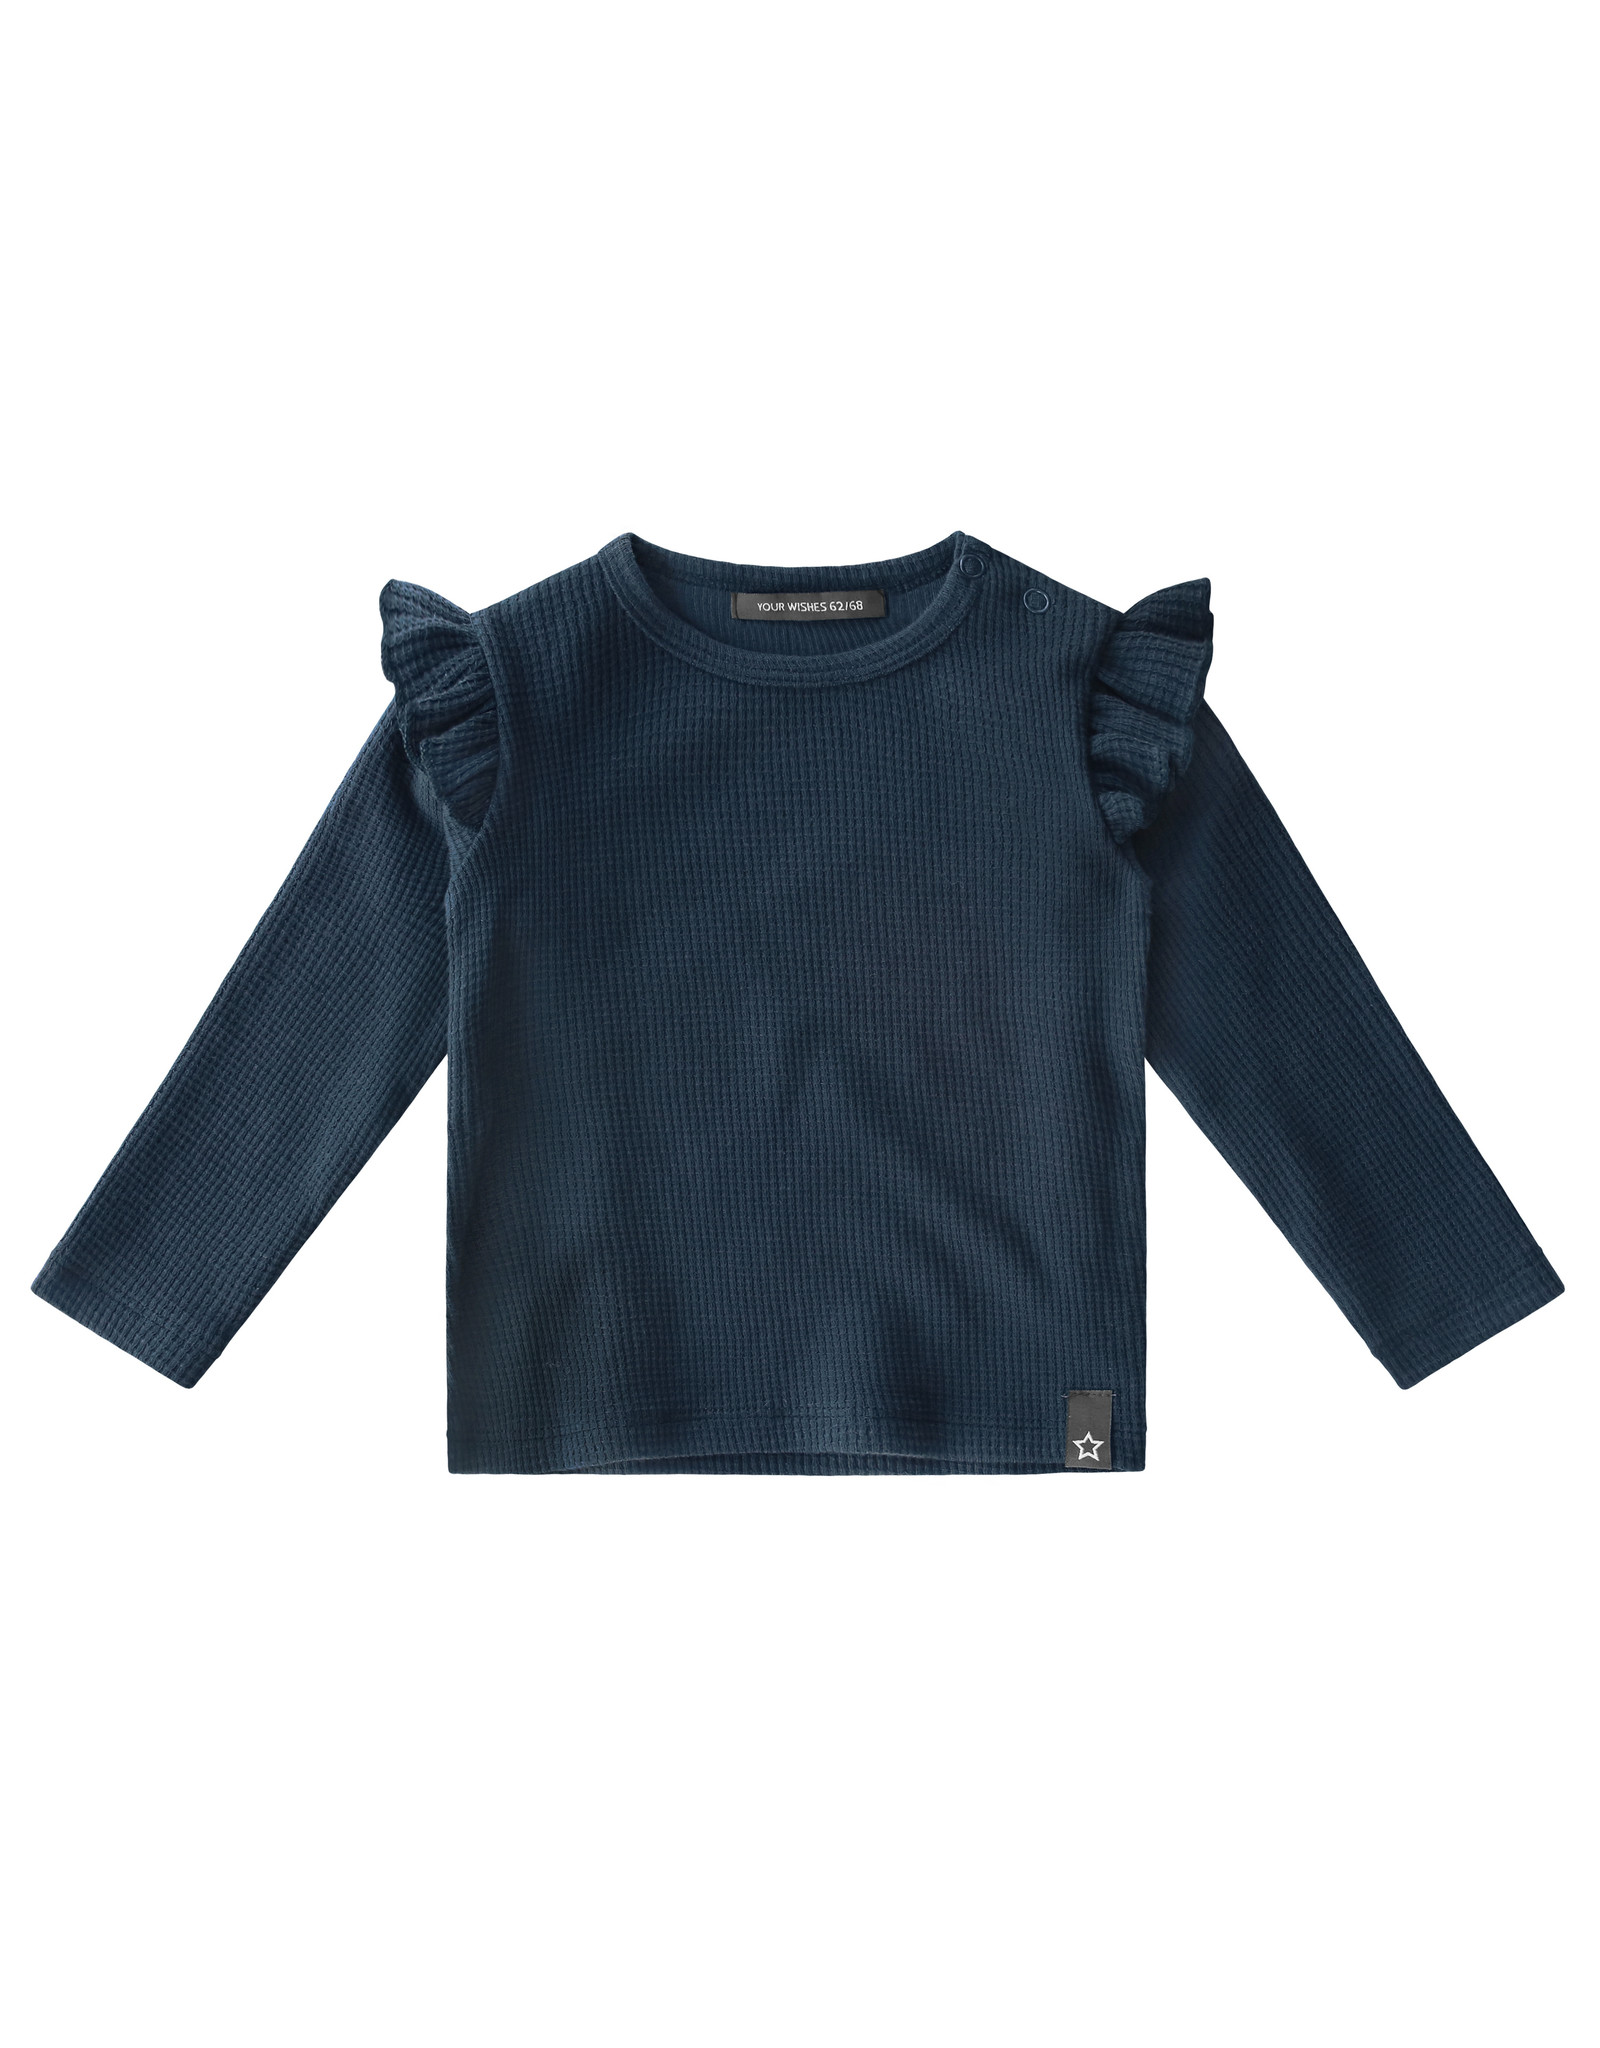 Your Wishes Navy - Waffle   Ruffle Shoulder Top, Navy